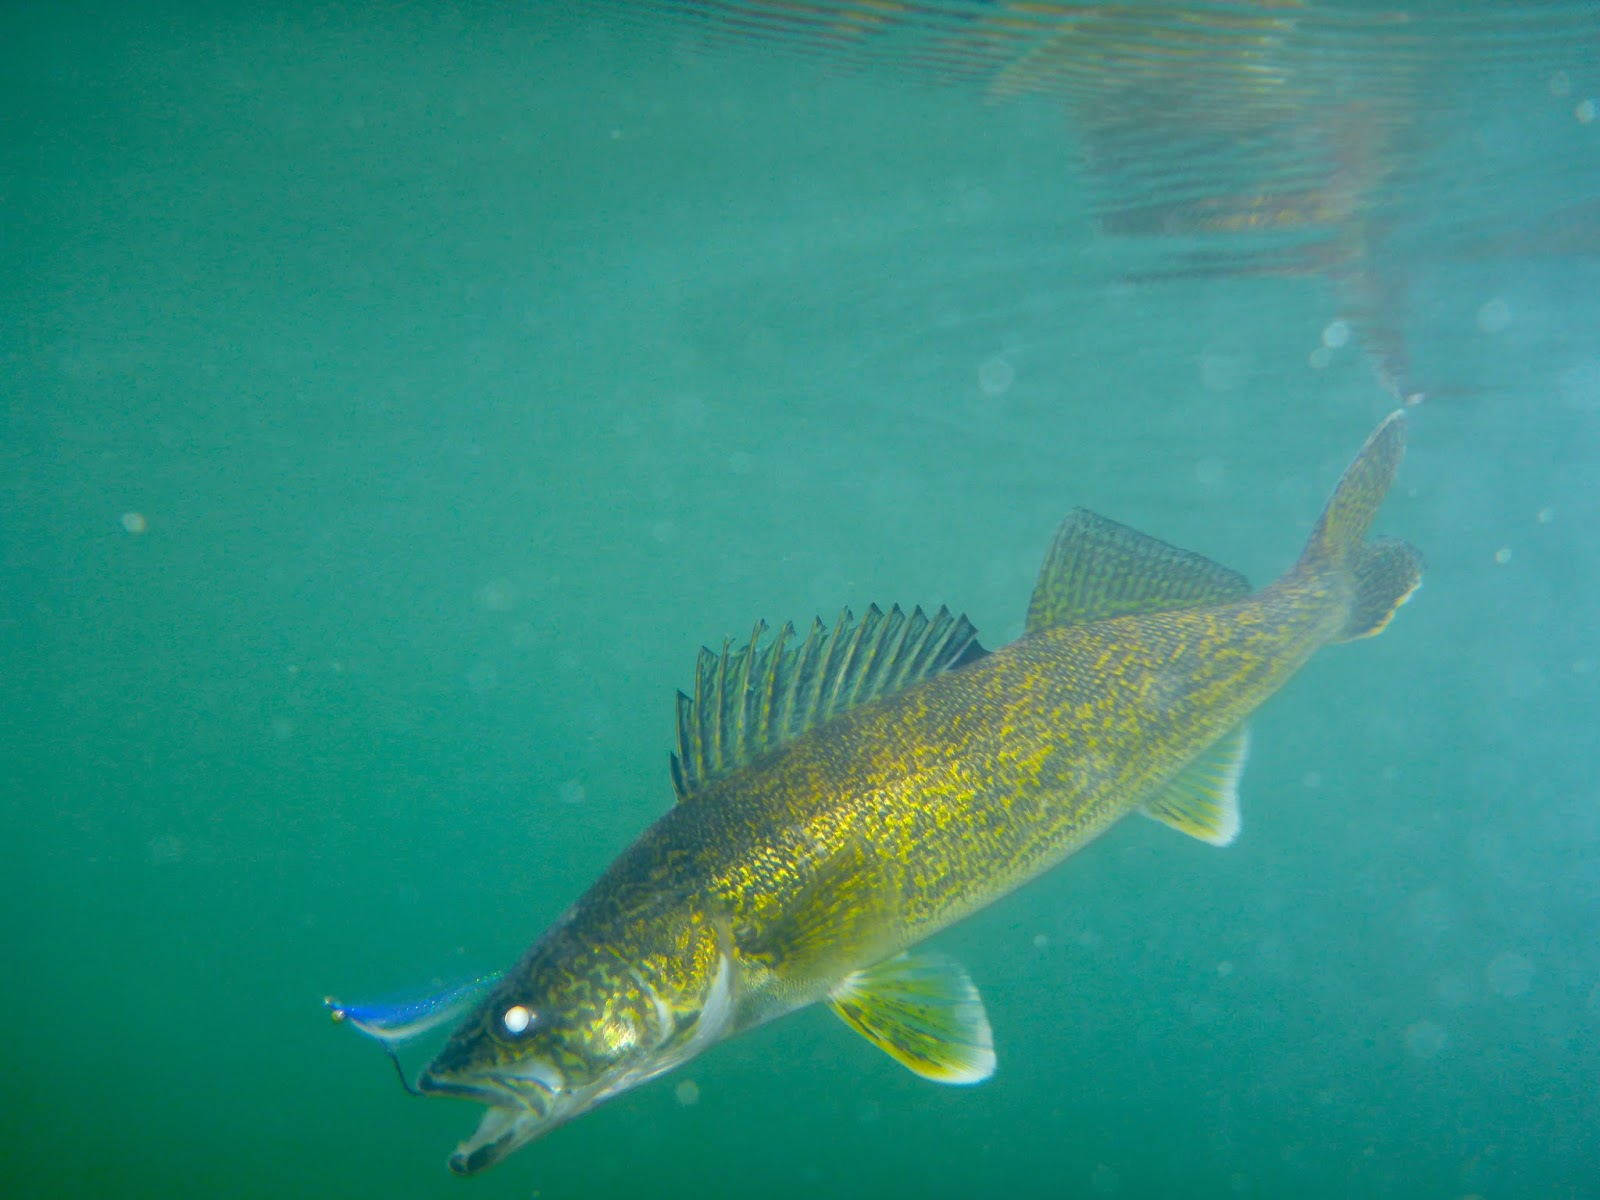 Central Alberta Fly Tying Club: Swinging Clousers for Walleye